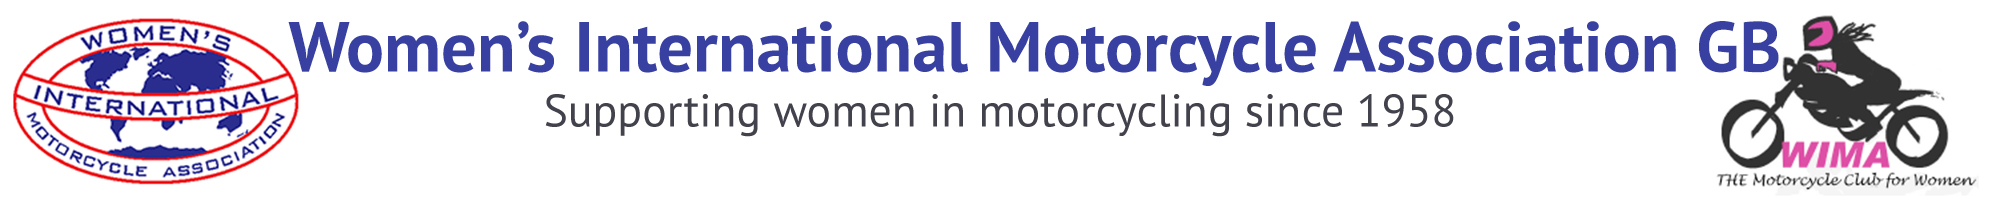 Women's International Motorcycle Association GB